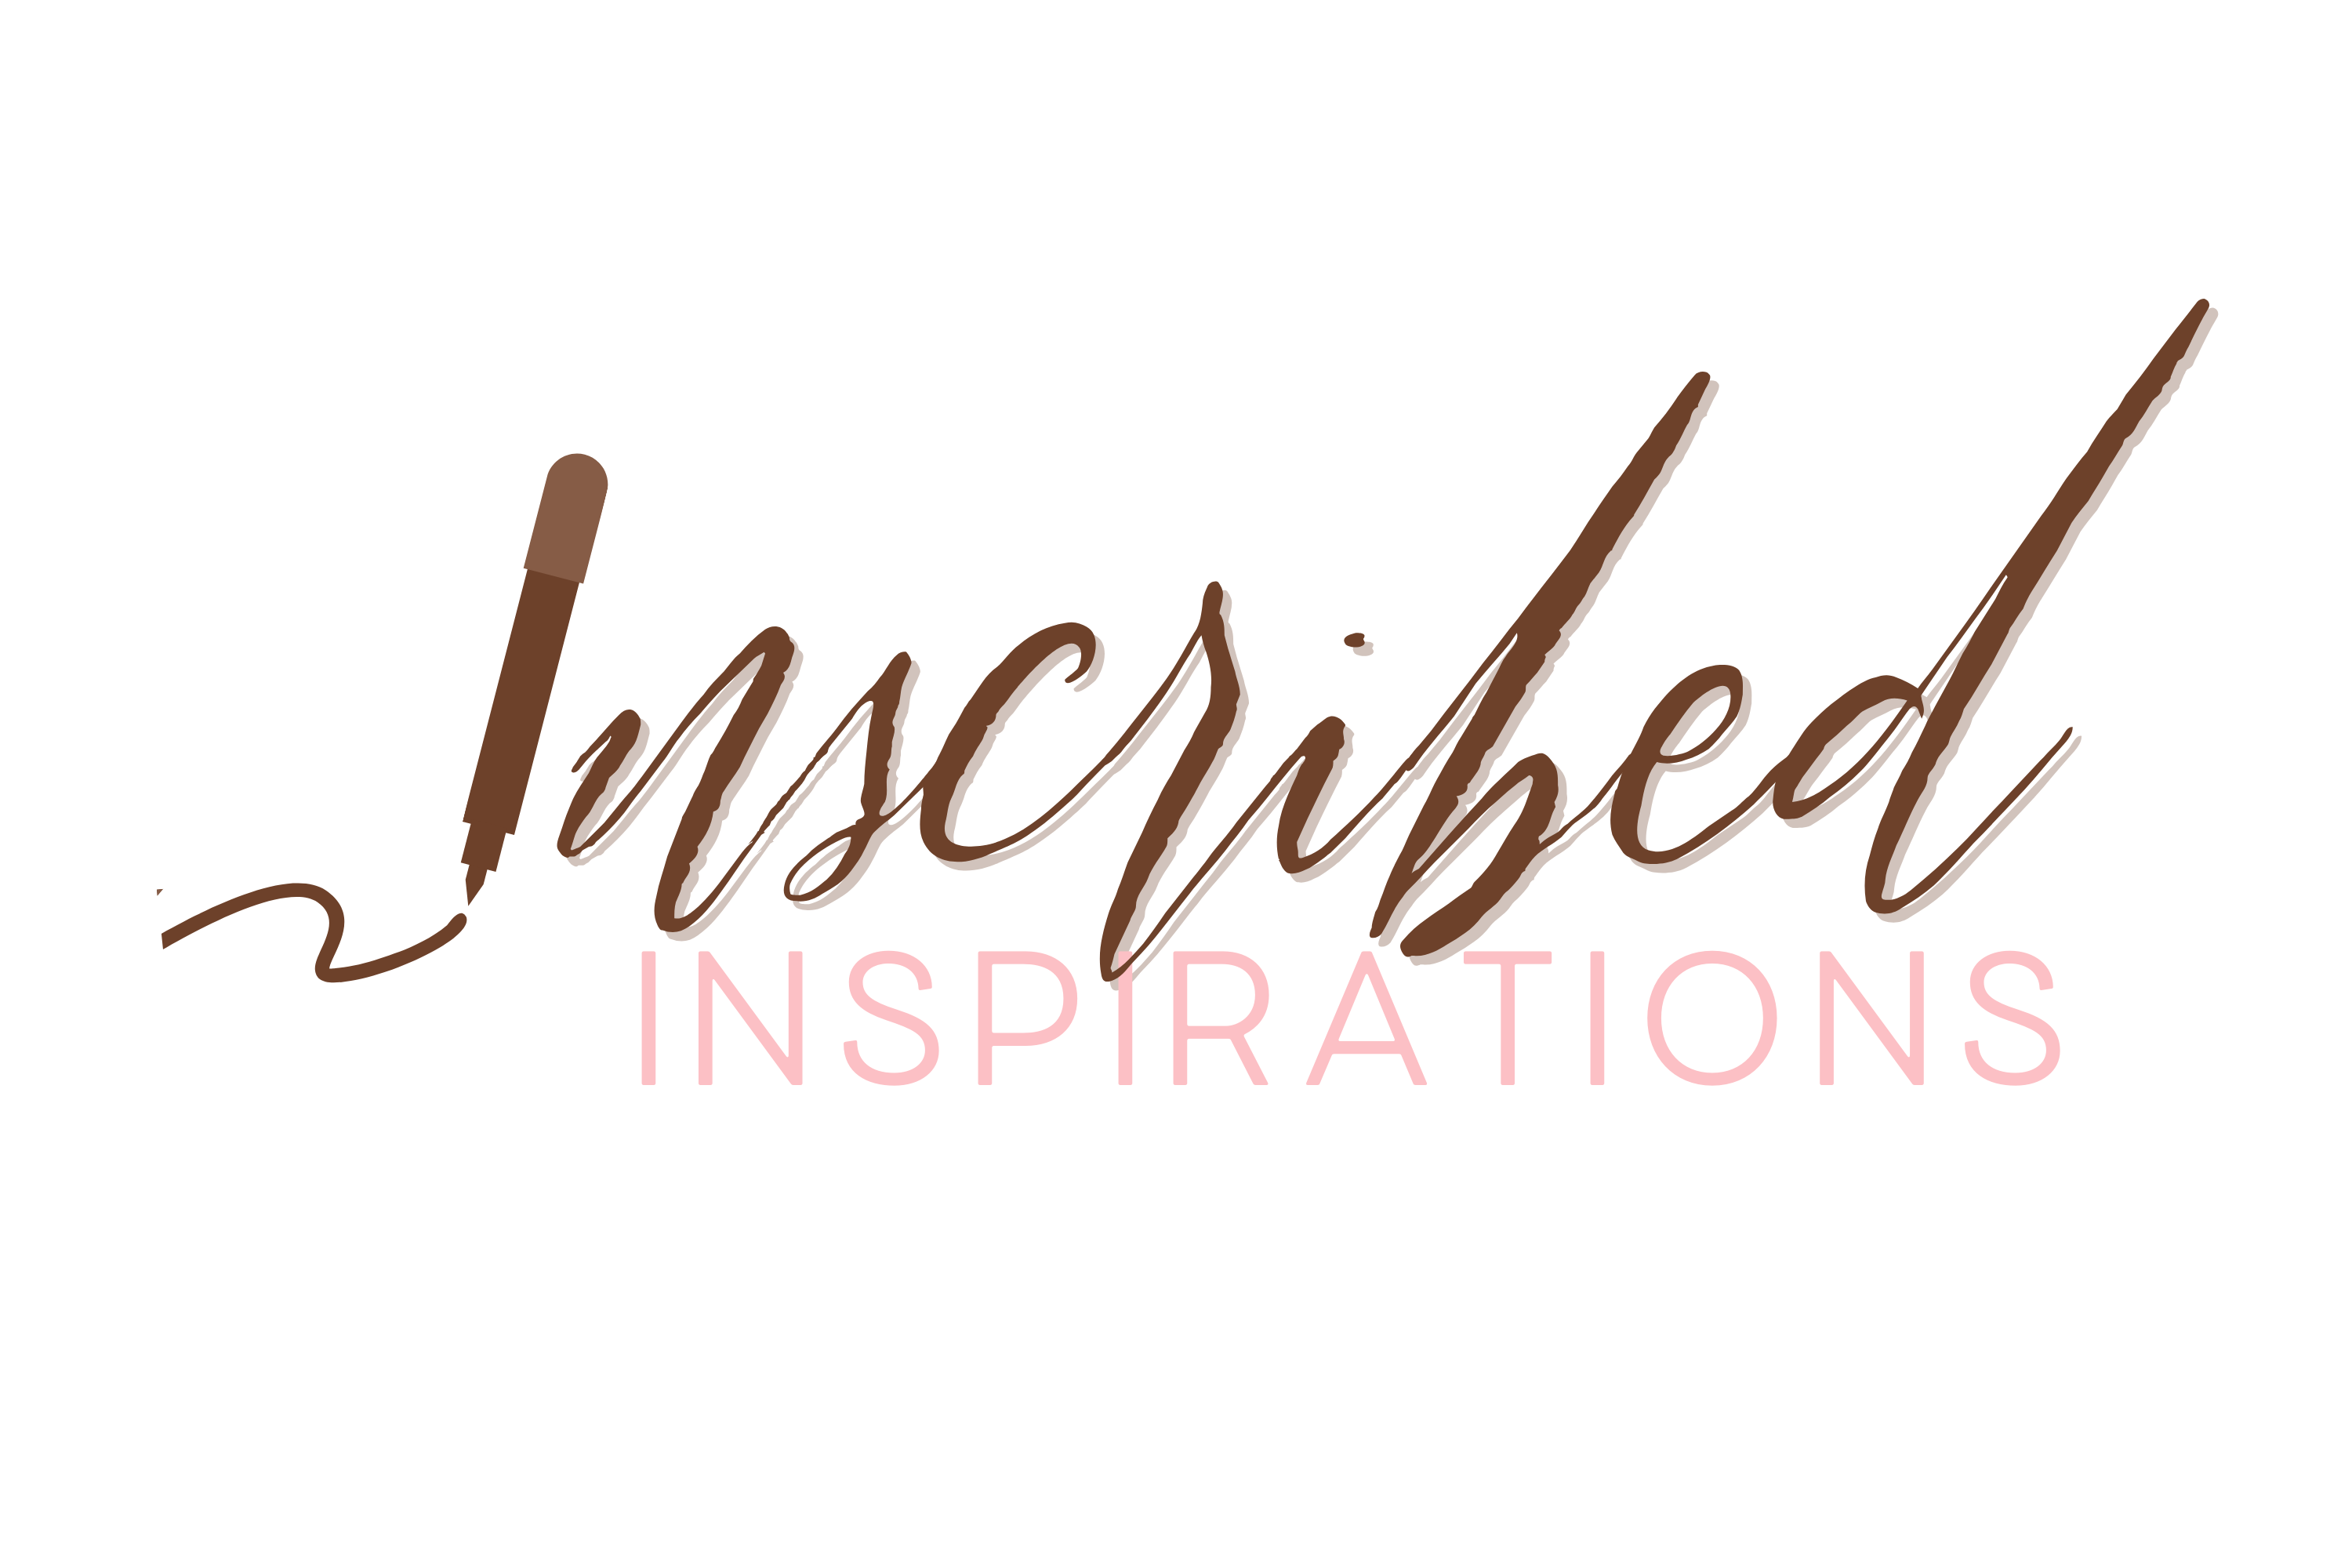 inscribed inspirations copy